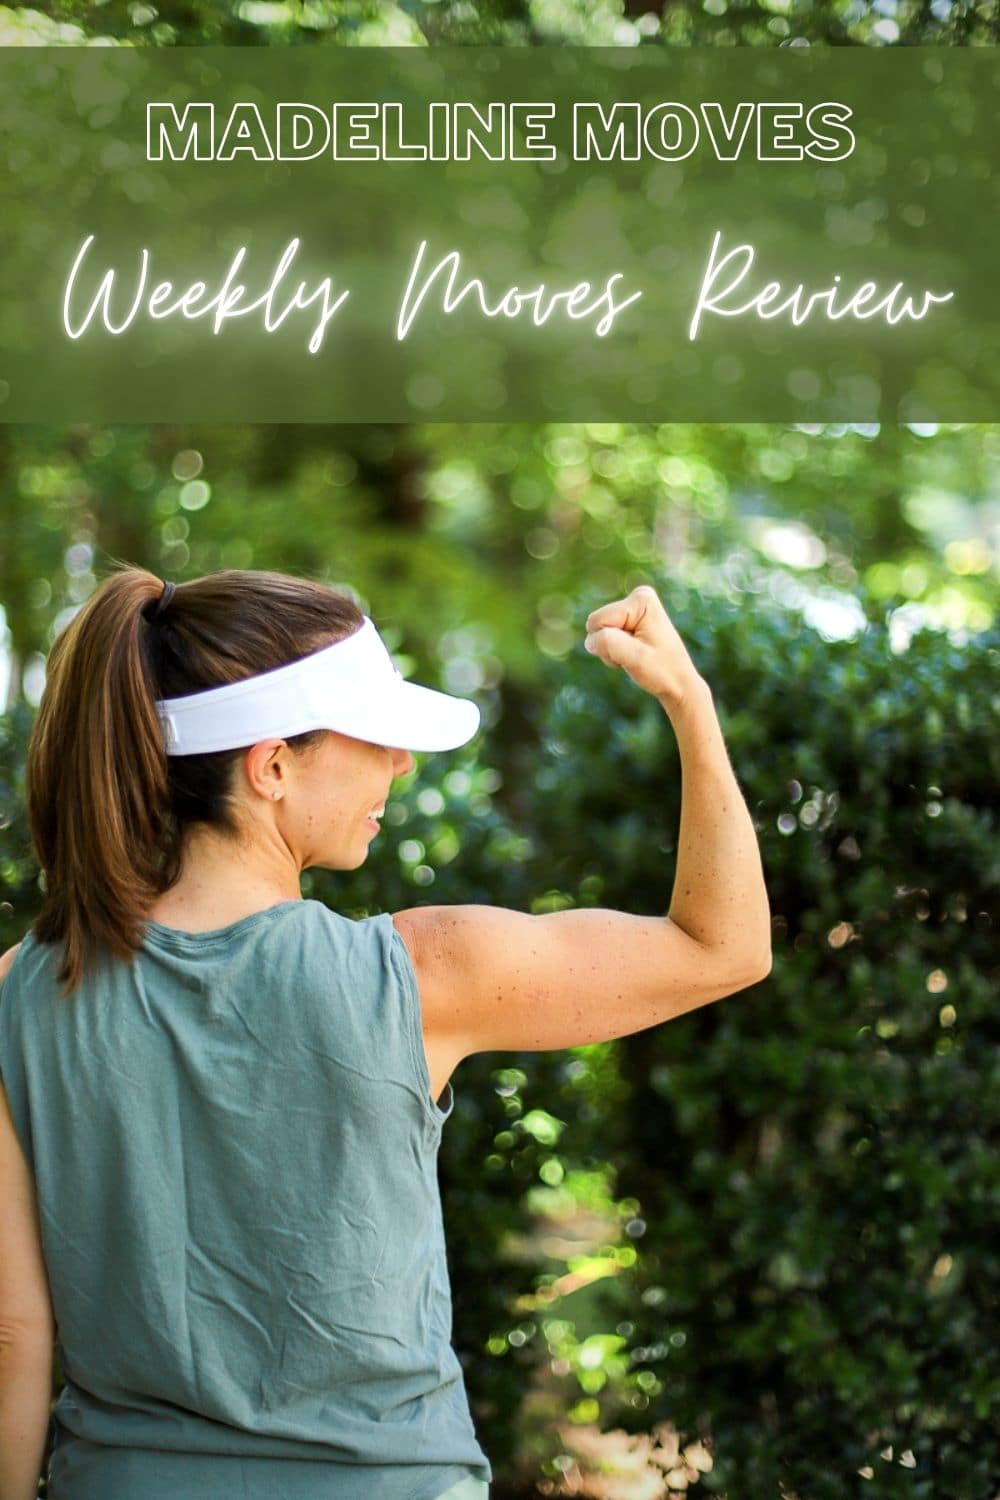 WEEKLY MOVES REVIEW